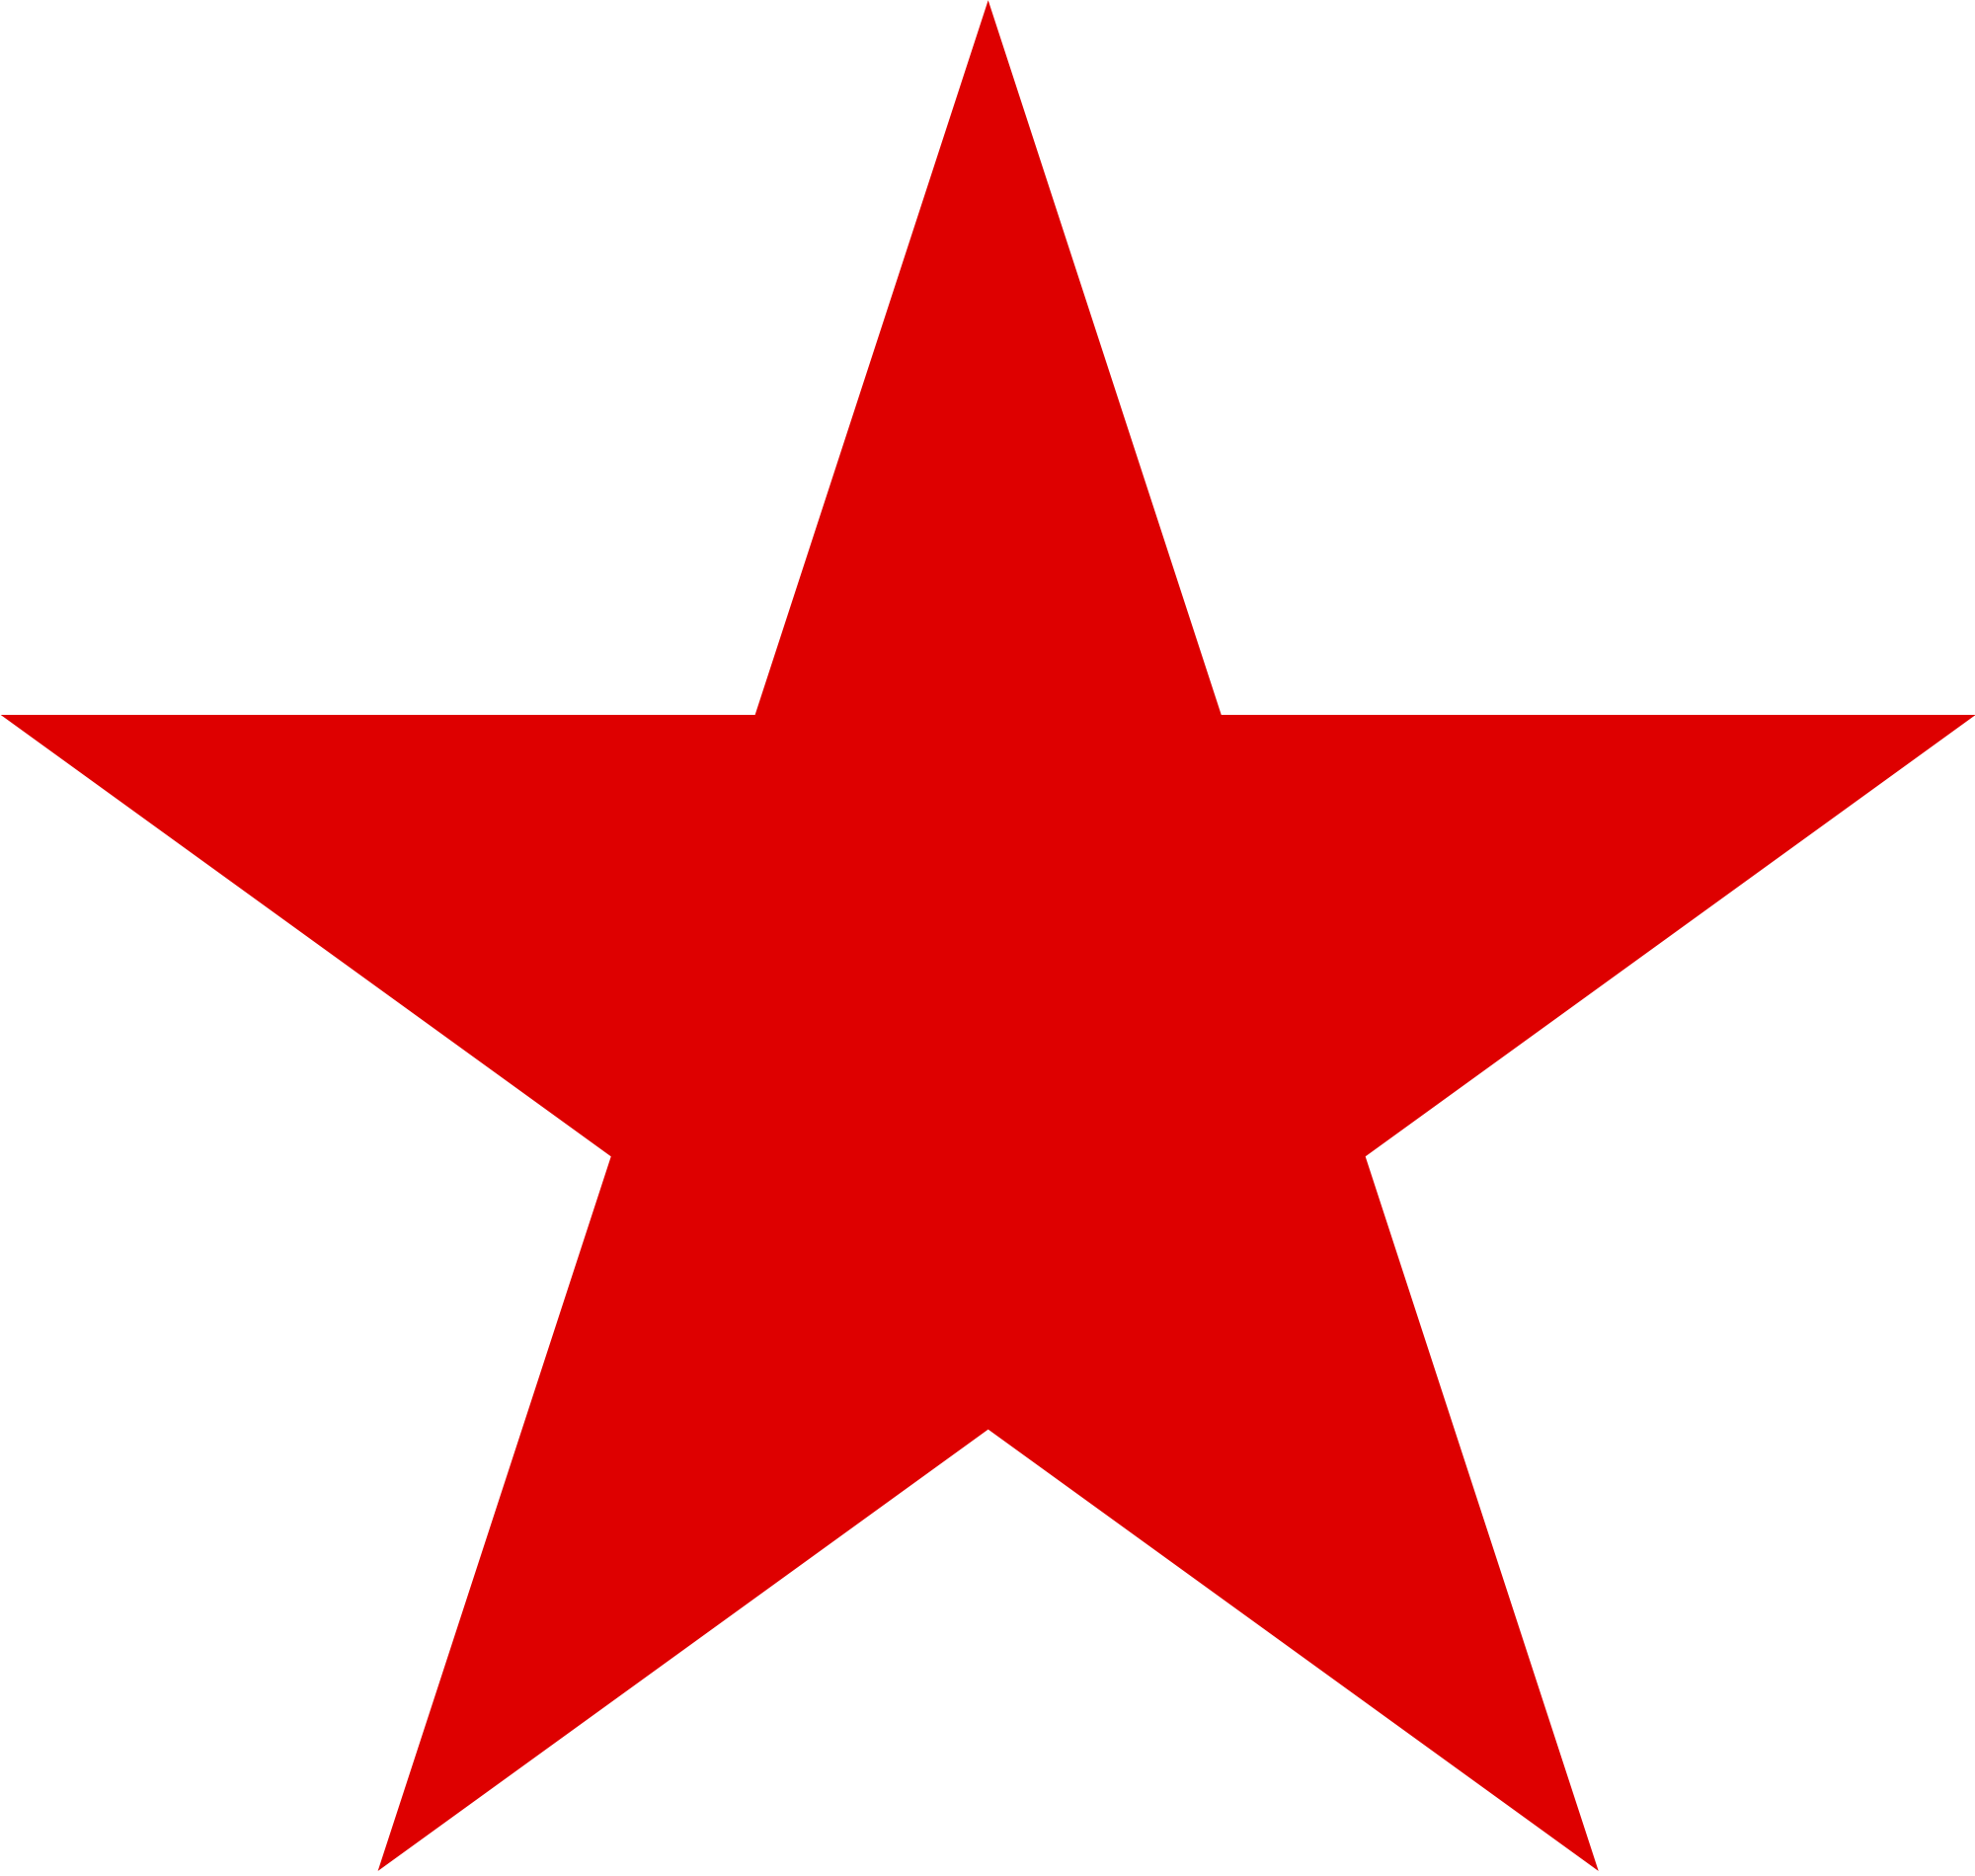 Red star png. Image purepng free transparent